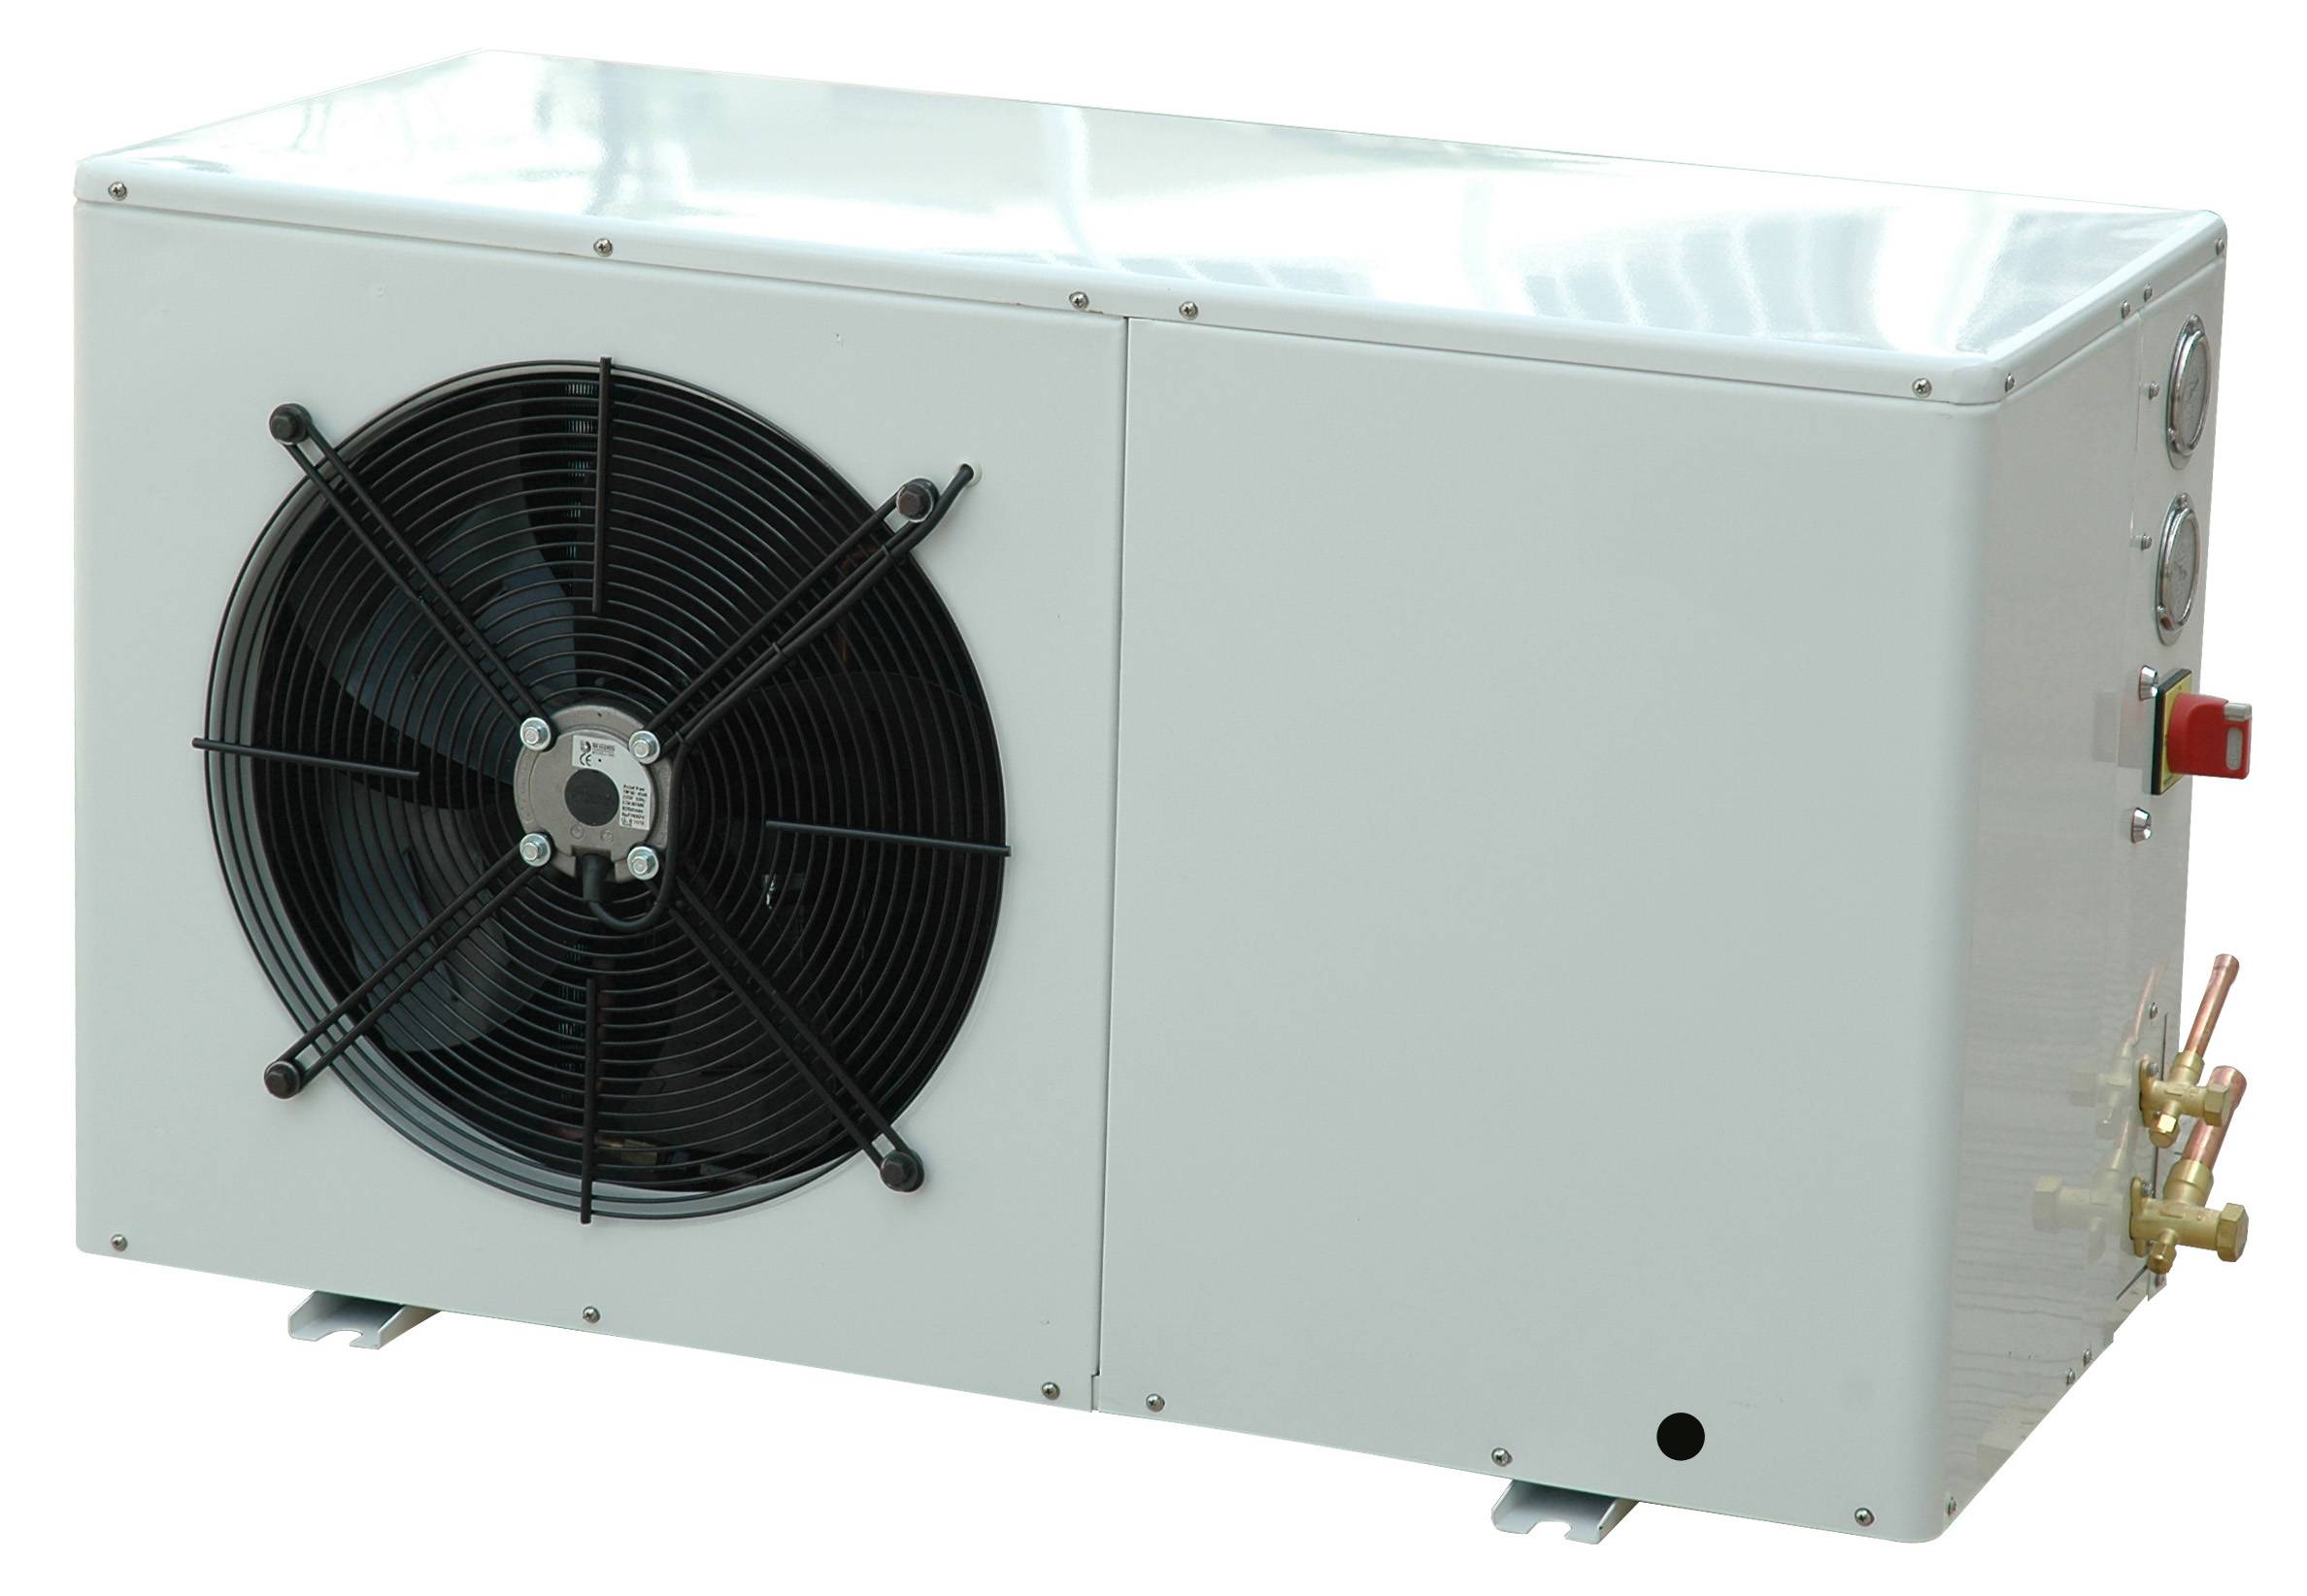 Refrigeration packaged condensing units